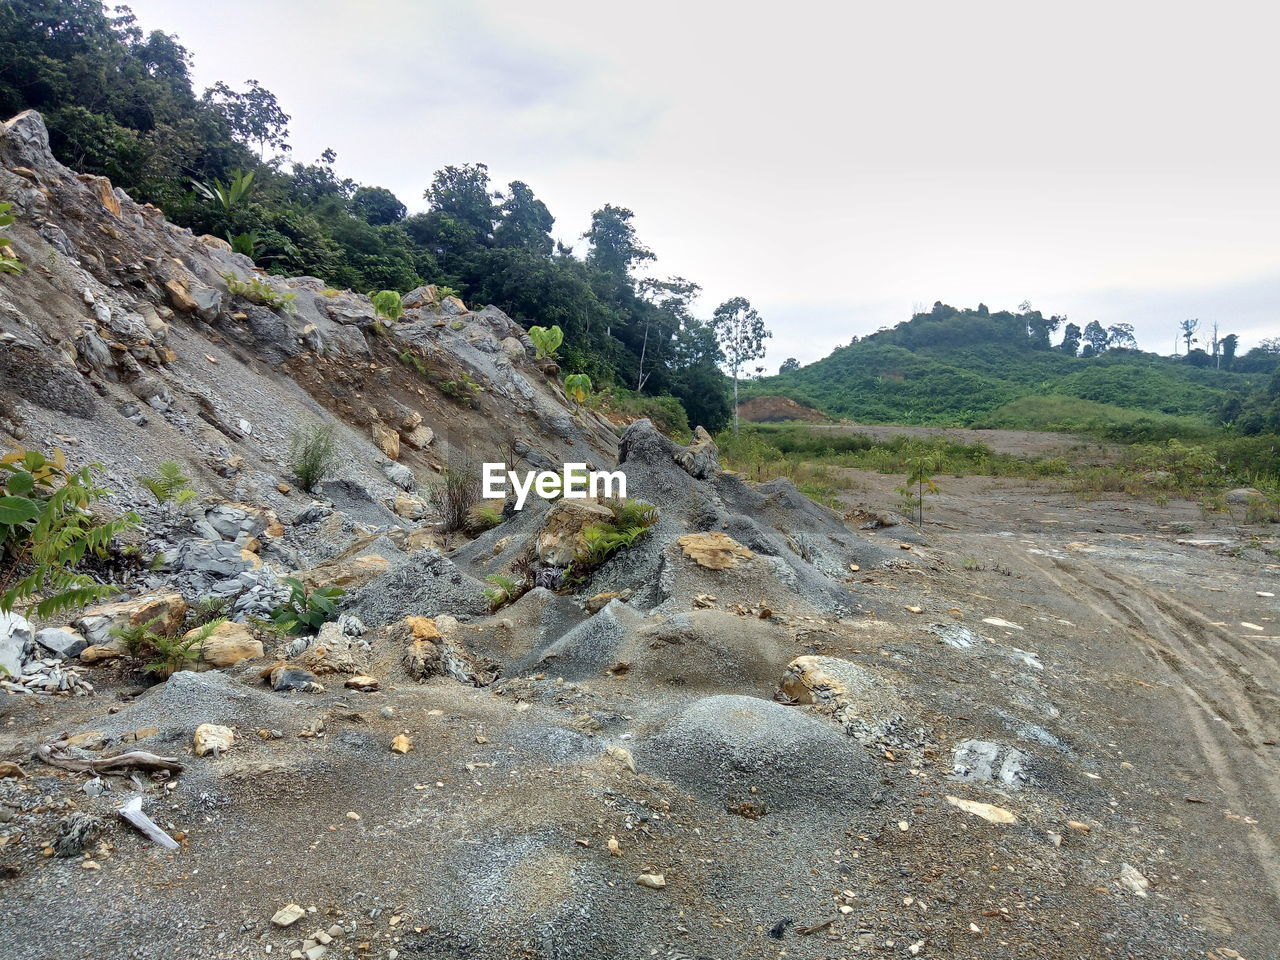 rock, sky, plant, beauty in nature, nature, tranquility, environment, day, tranquil scene, tree, rock - object, solid, scenics - nature, no people, non-urban scene, landscape, land, mountain, cloud - sky, outdoors, eroded